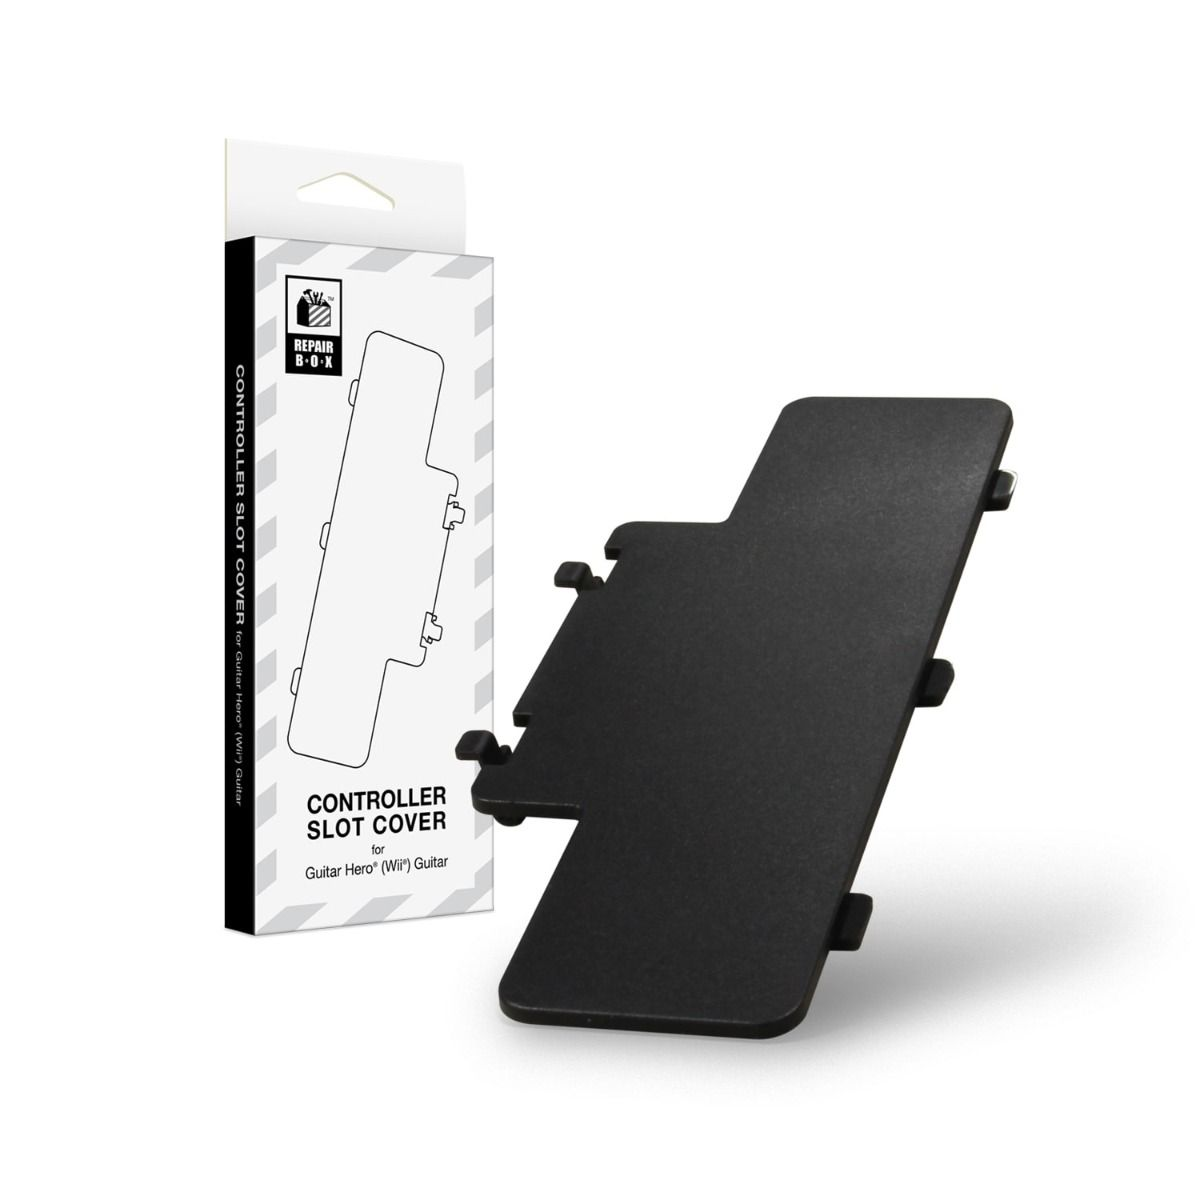 Wii Guitar Controller Cover (1)